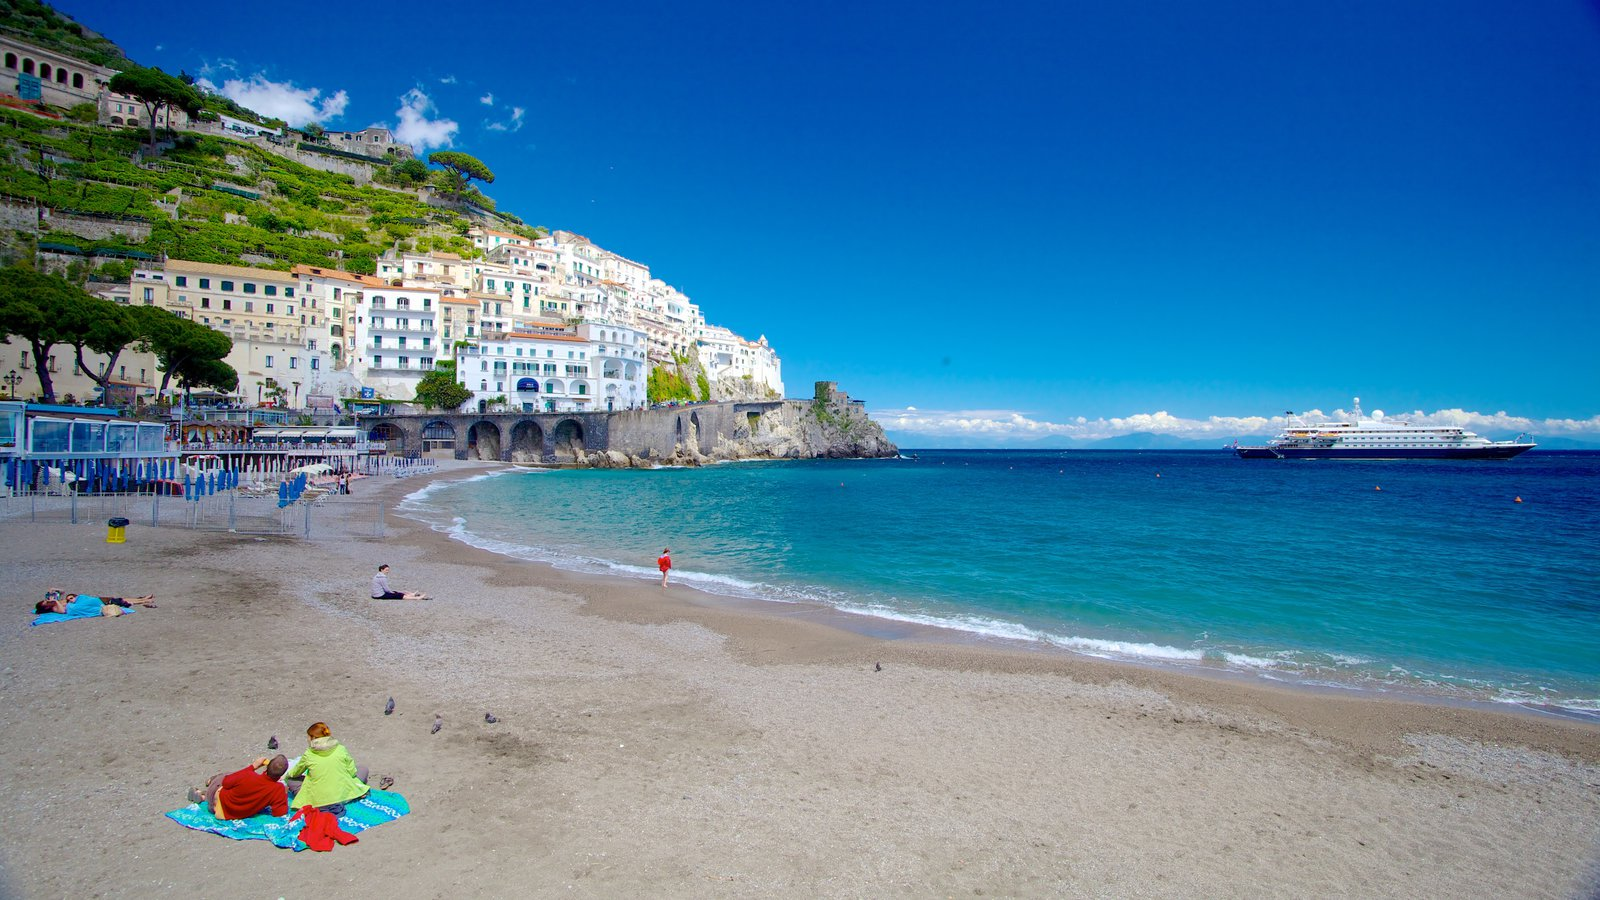 Amalfi showing a coastal town, a bay or harbor and a beach